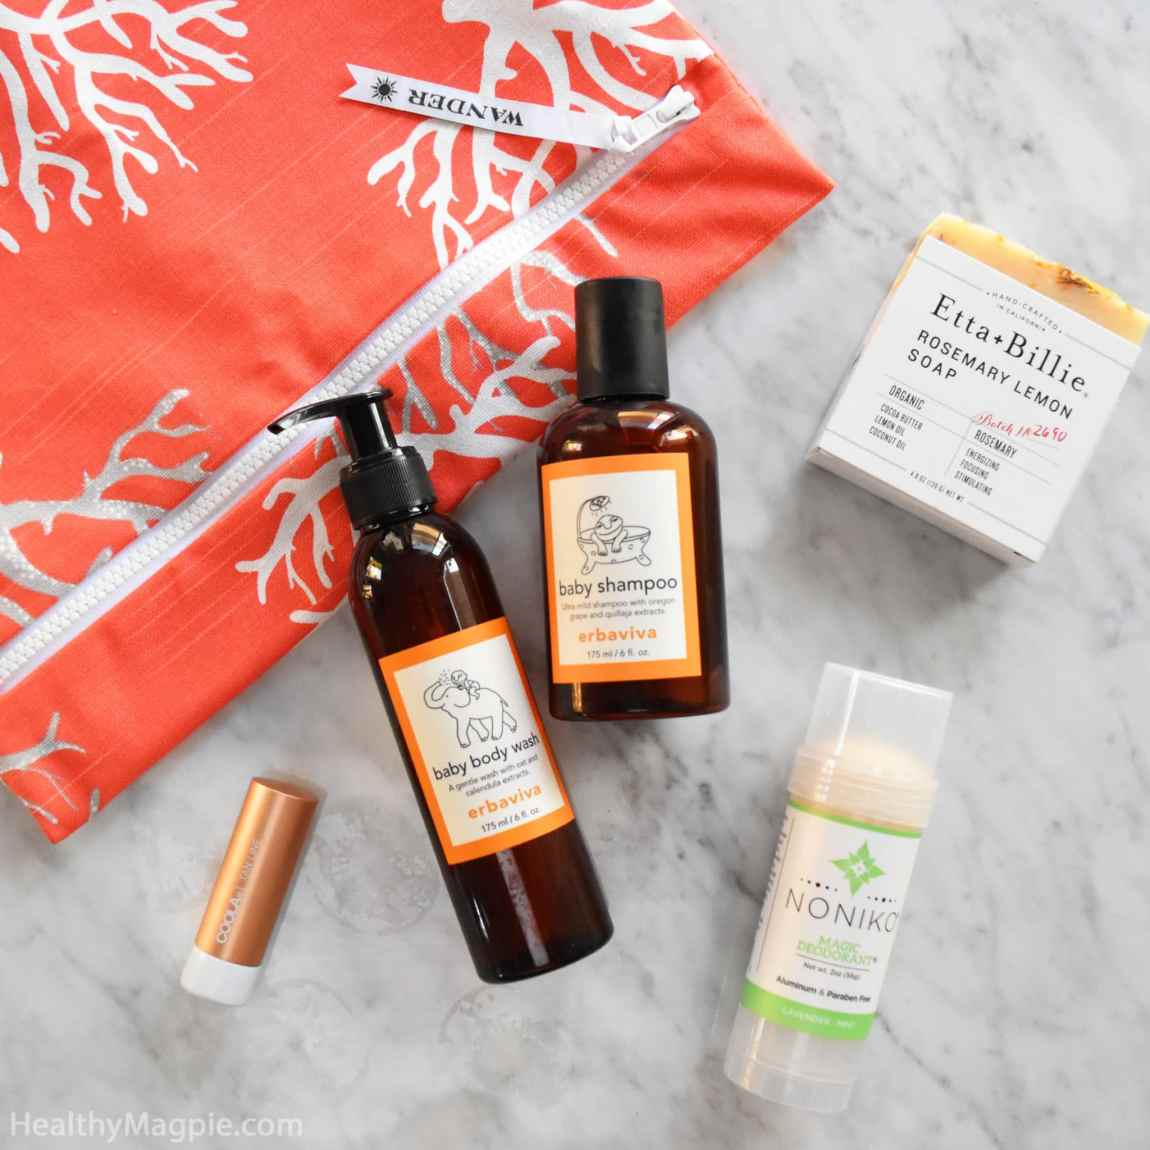 Pictures and reviews of my awesome haul from SeaMakers & Co sustainable gifts and beauty in La Jolla California. I love my Wander wet bag, Erbaviva baby products, Noniko natural deodorant, Coola Liplux and Etta + Billie.